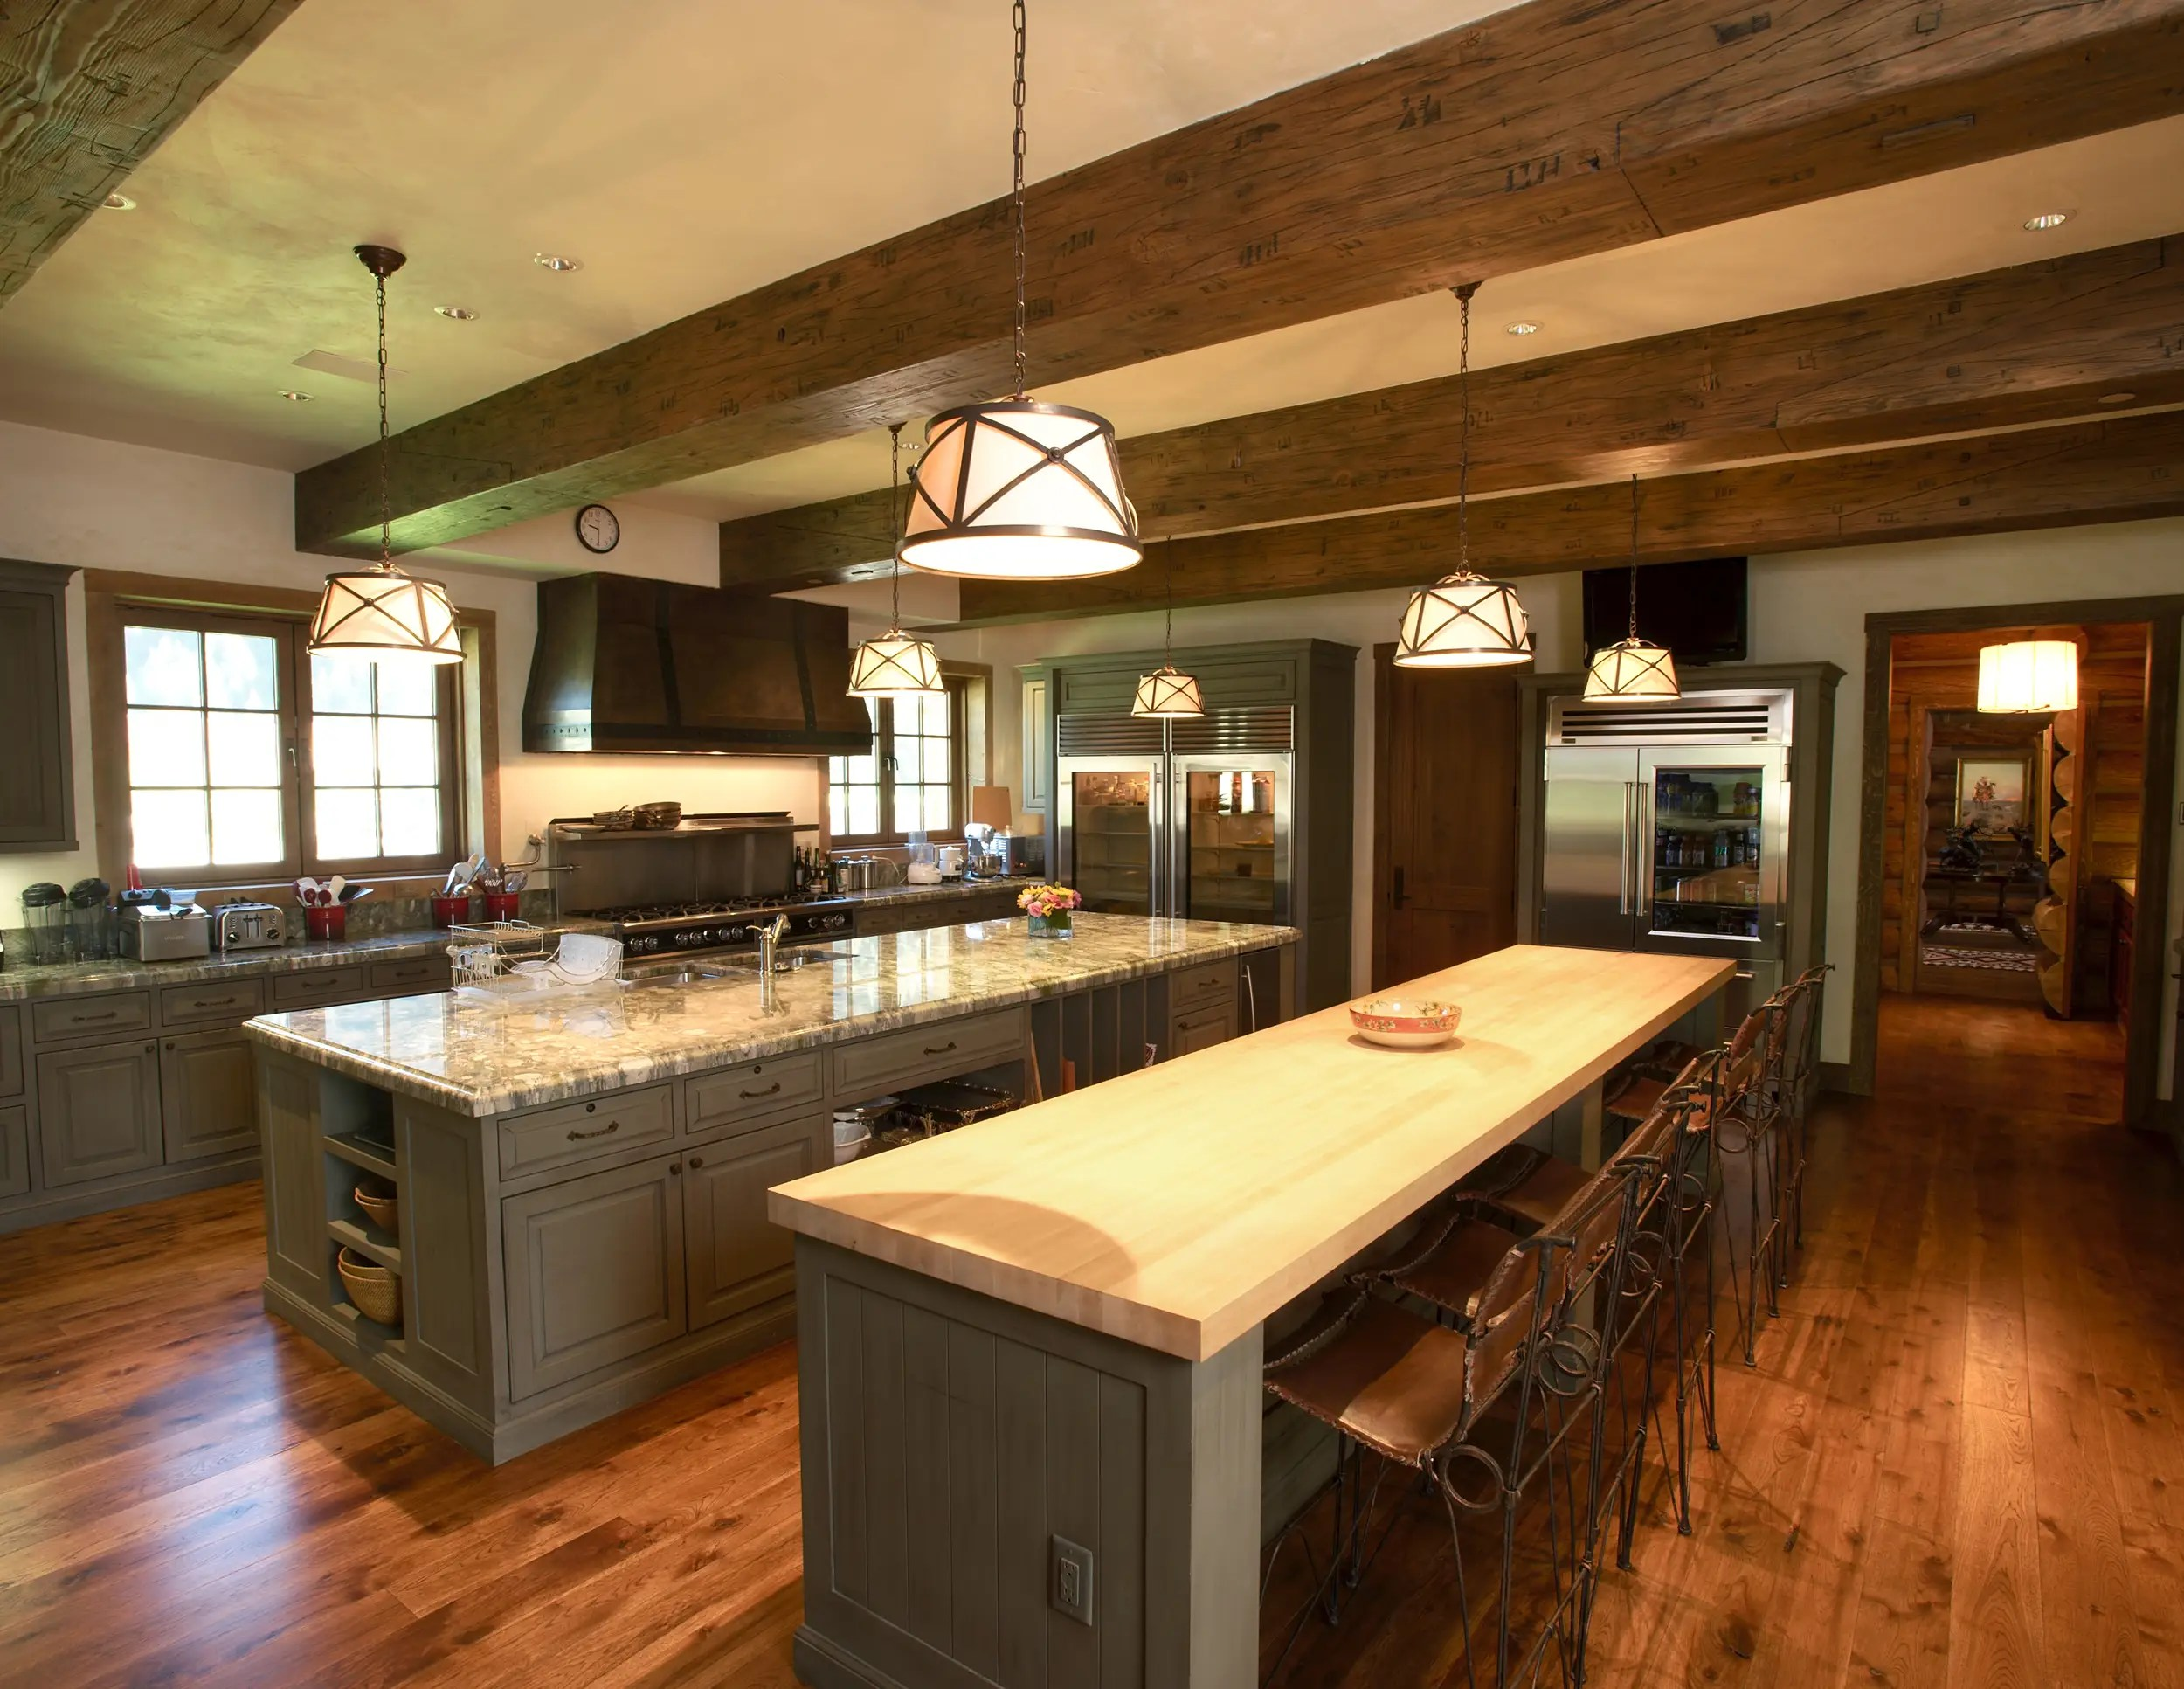 Kitchens are equipped to deal with a high volume of guests, and a temperature- and humidity-controlled wine cellar is prepared for a sizable collection.